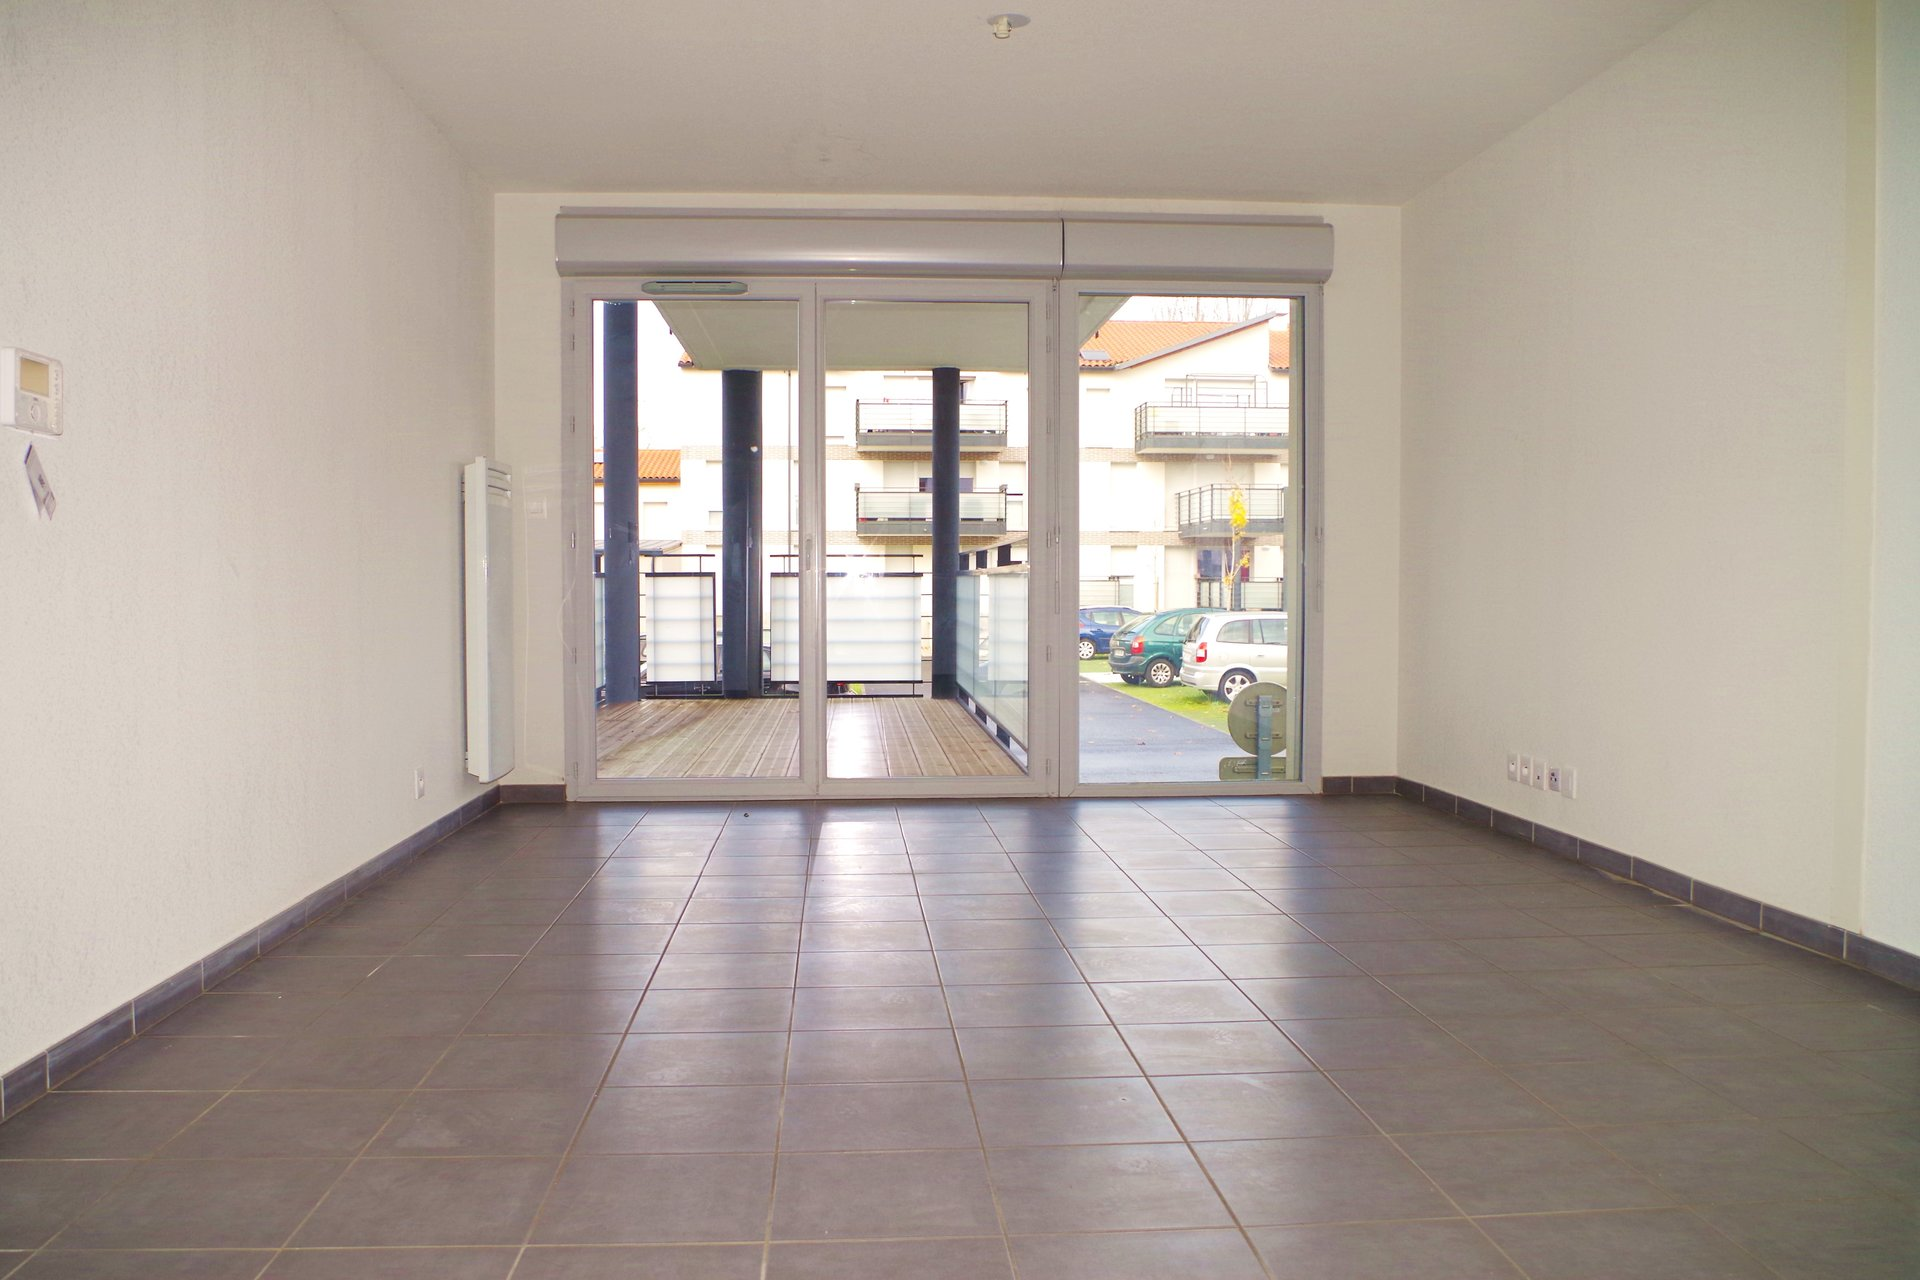 Appartement T2 - 45,28 m² - VILLENEUVE TOLOSANE